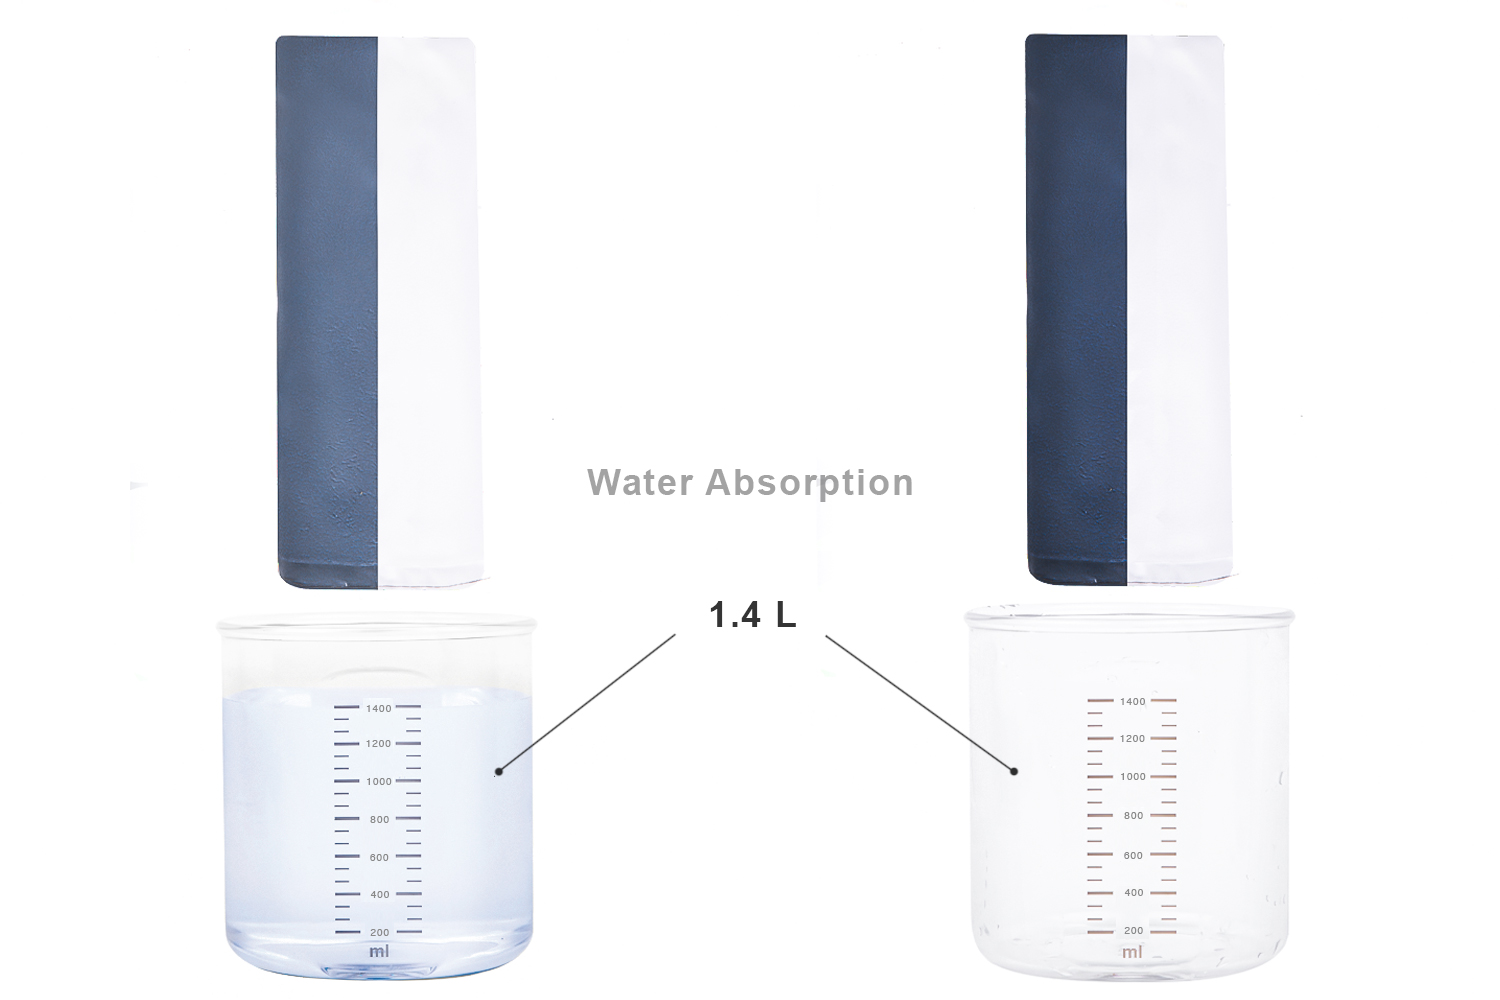 absorbent-water-absorption-2.jpg